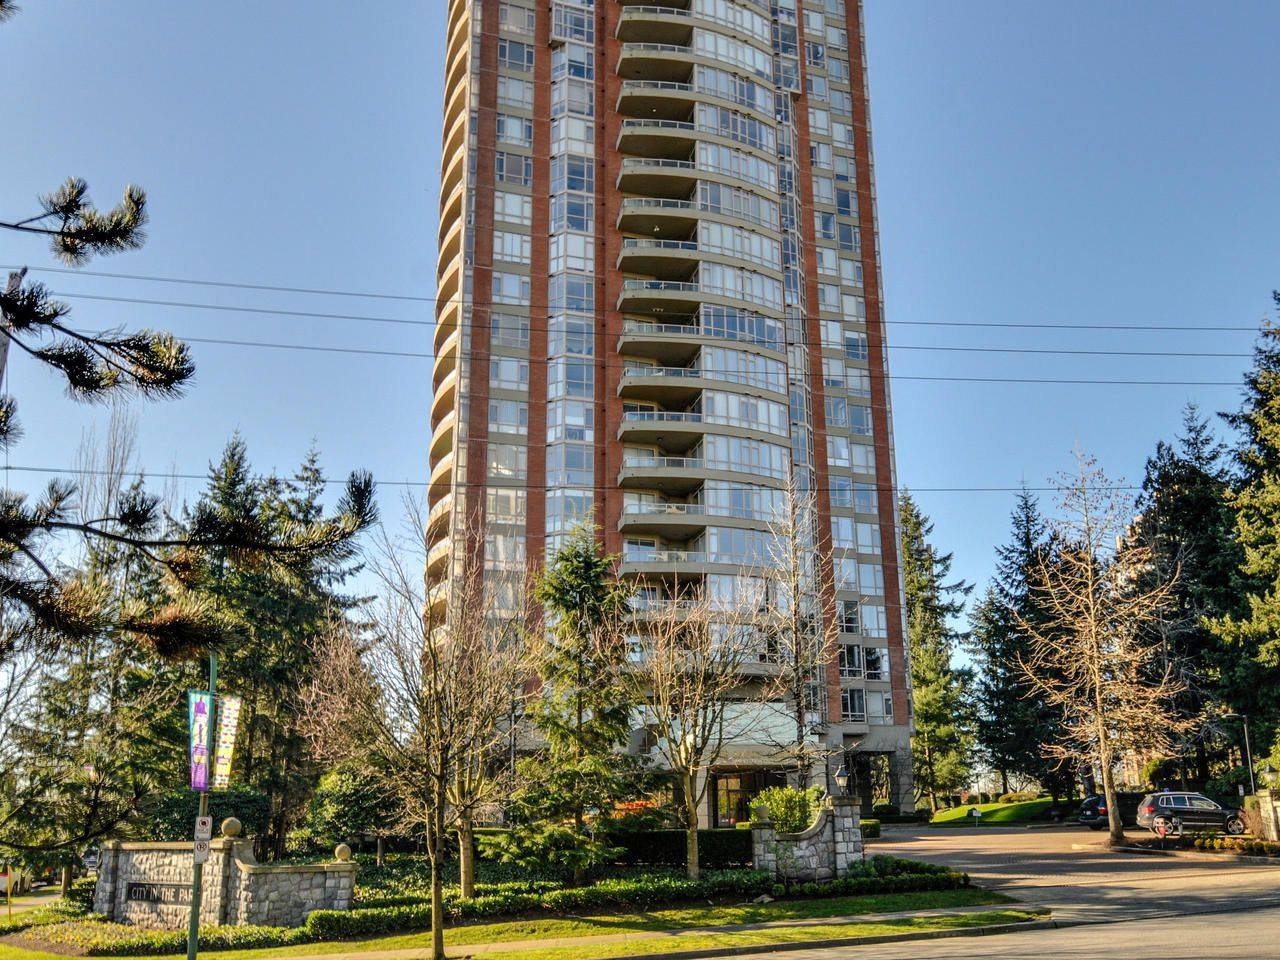 Main Photo: 903 6888 STATION HILL DRIVE in Burnaby: South Slope Condo for sale (Burnaby South)  : MLS®# R2336364